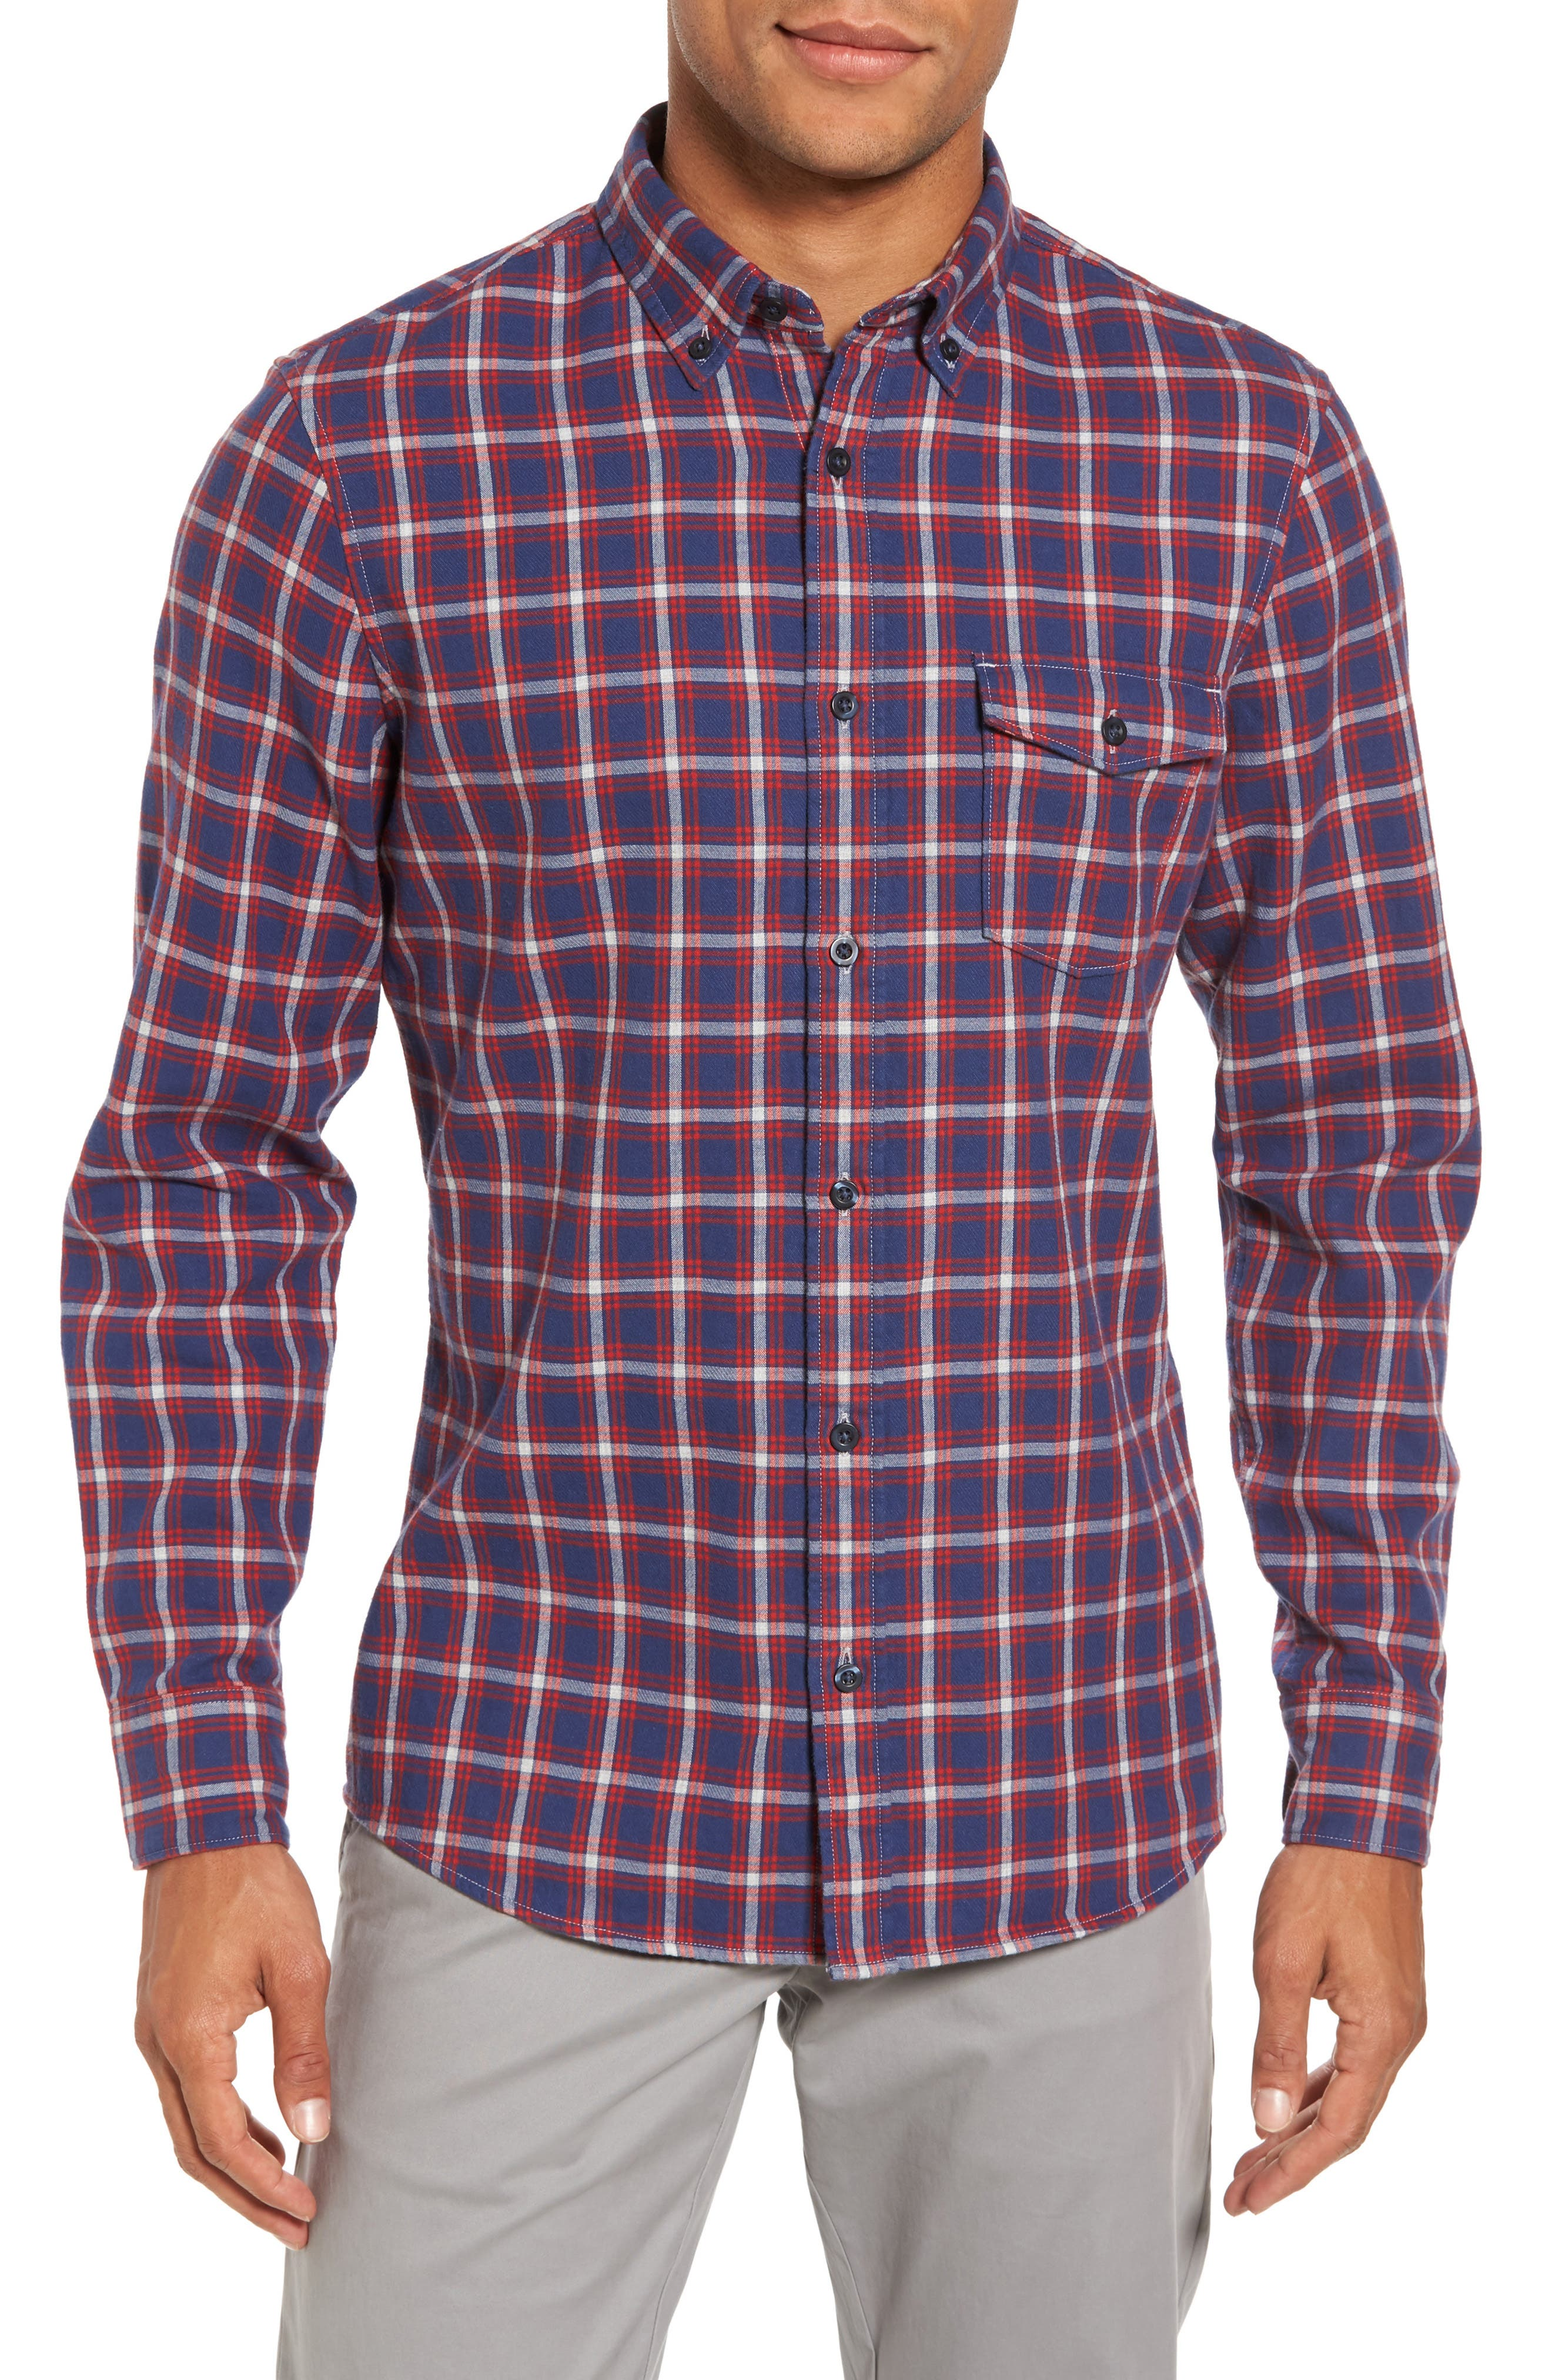 Trim Fit Duofold Check Sport Shirt,                             Main thumbnail 1, color,                             Navy Iris Red Plaid Duofold